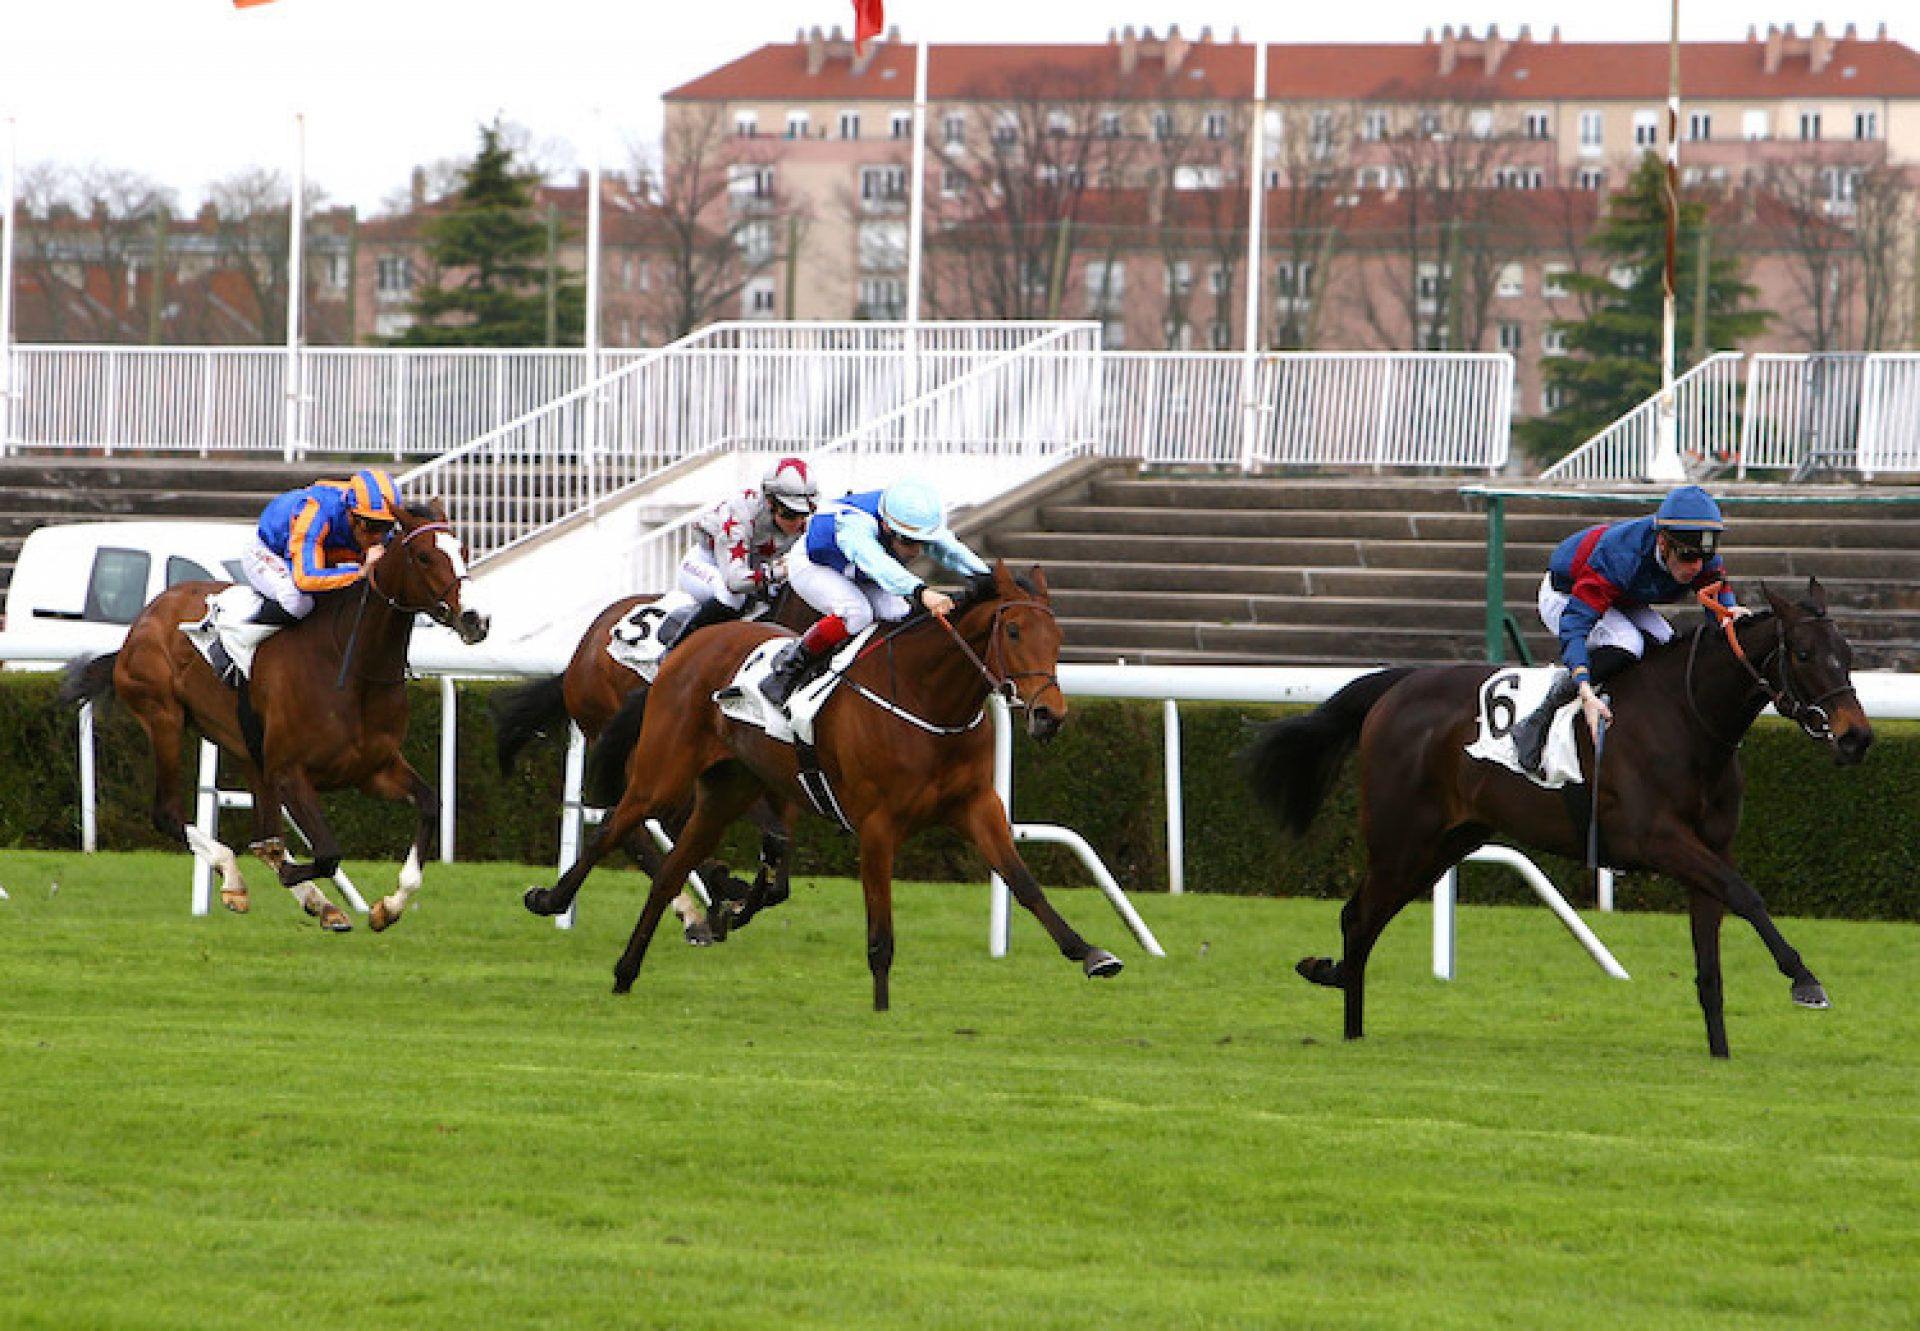 Pollaro (Camelot) winning on debut at Saint-Cloud